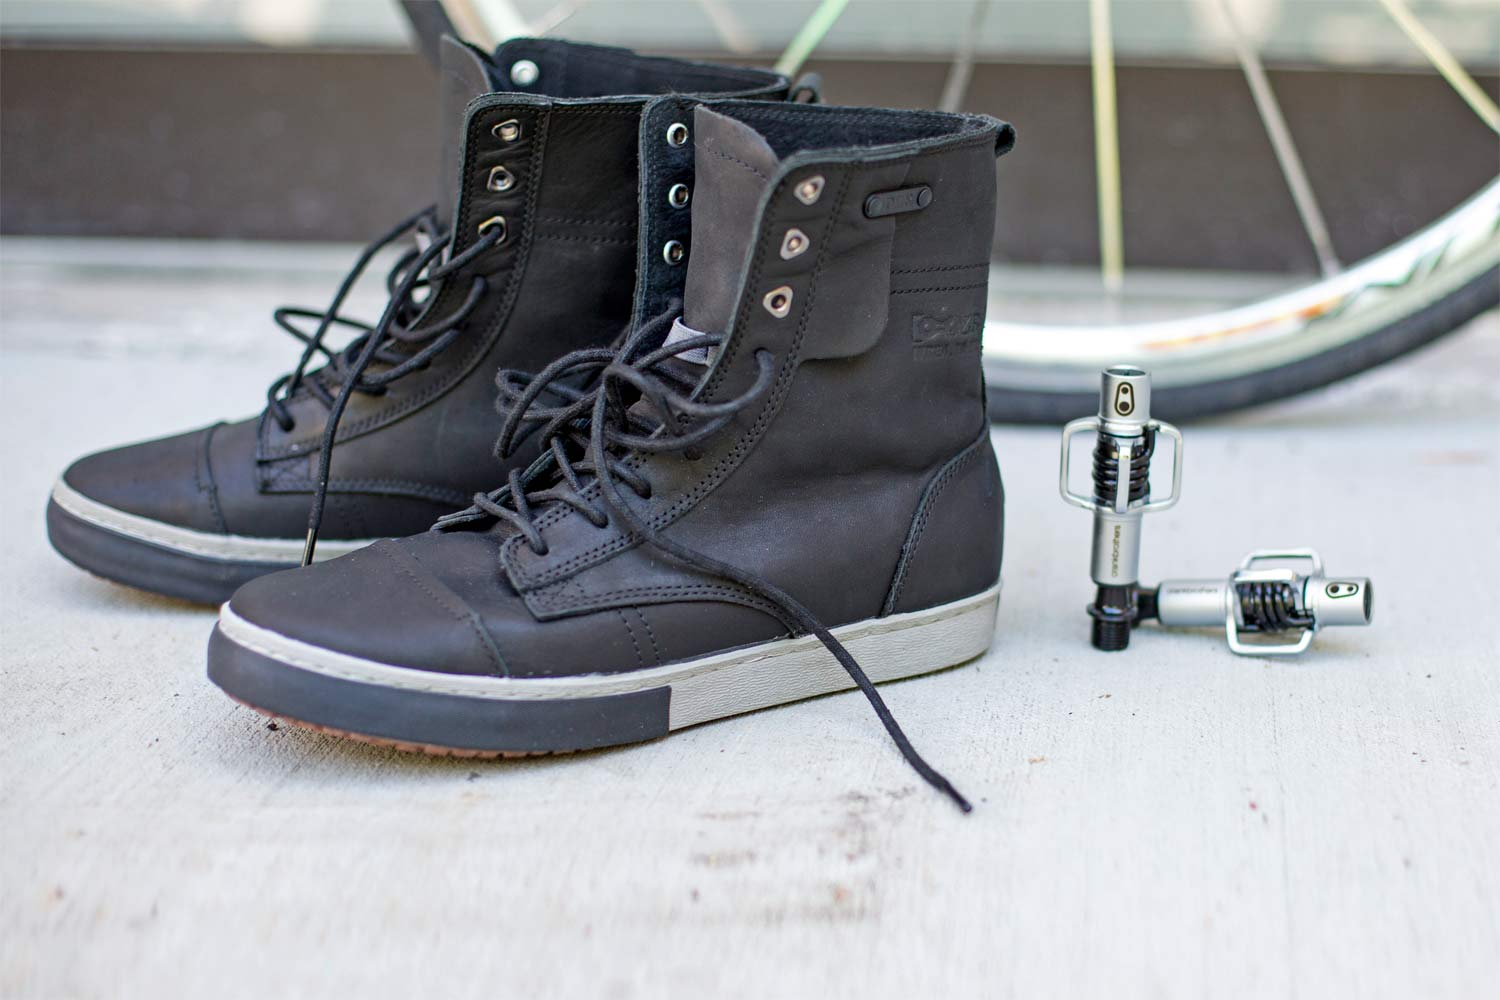 DZR Turin moto leather lace-up cycling boots